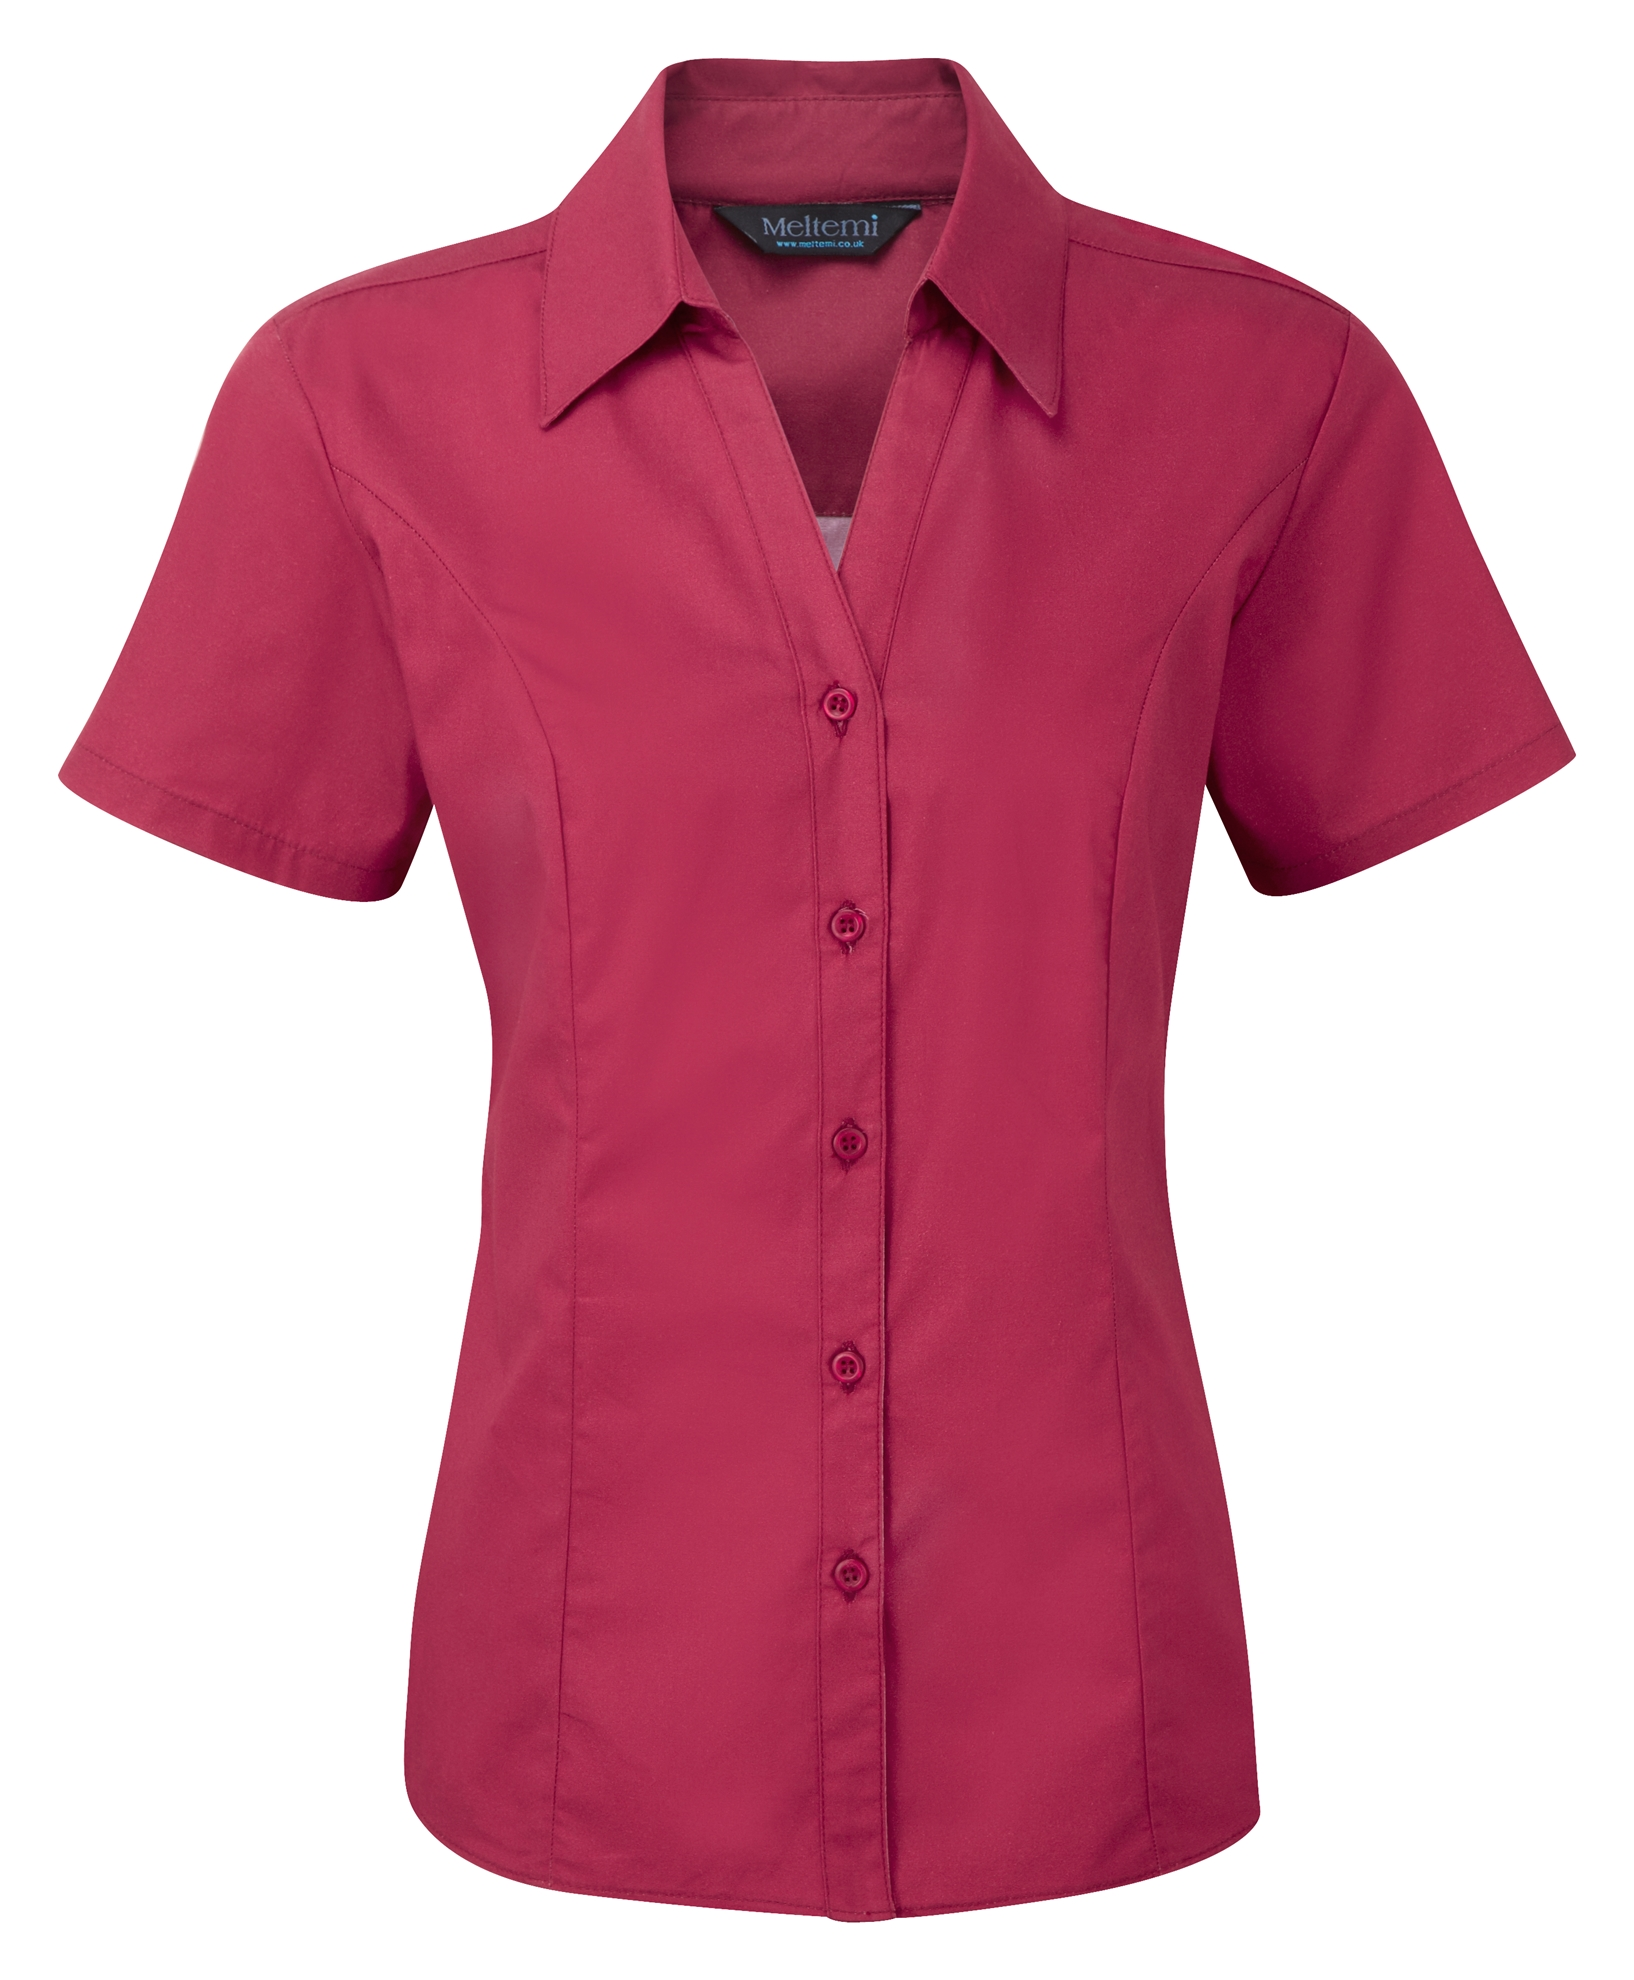 Picture of Semi-Fitted Polycotton Blouse - Plain Berry